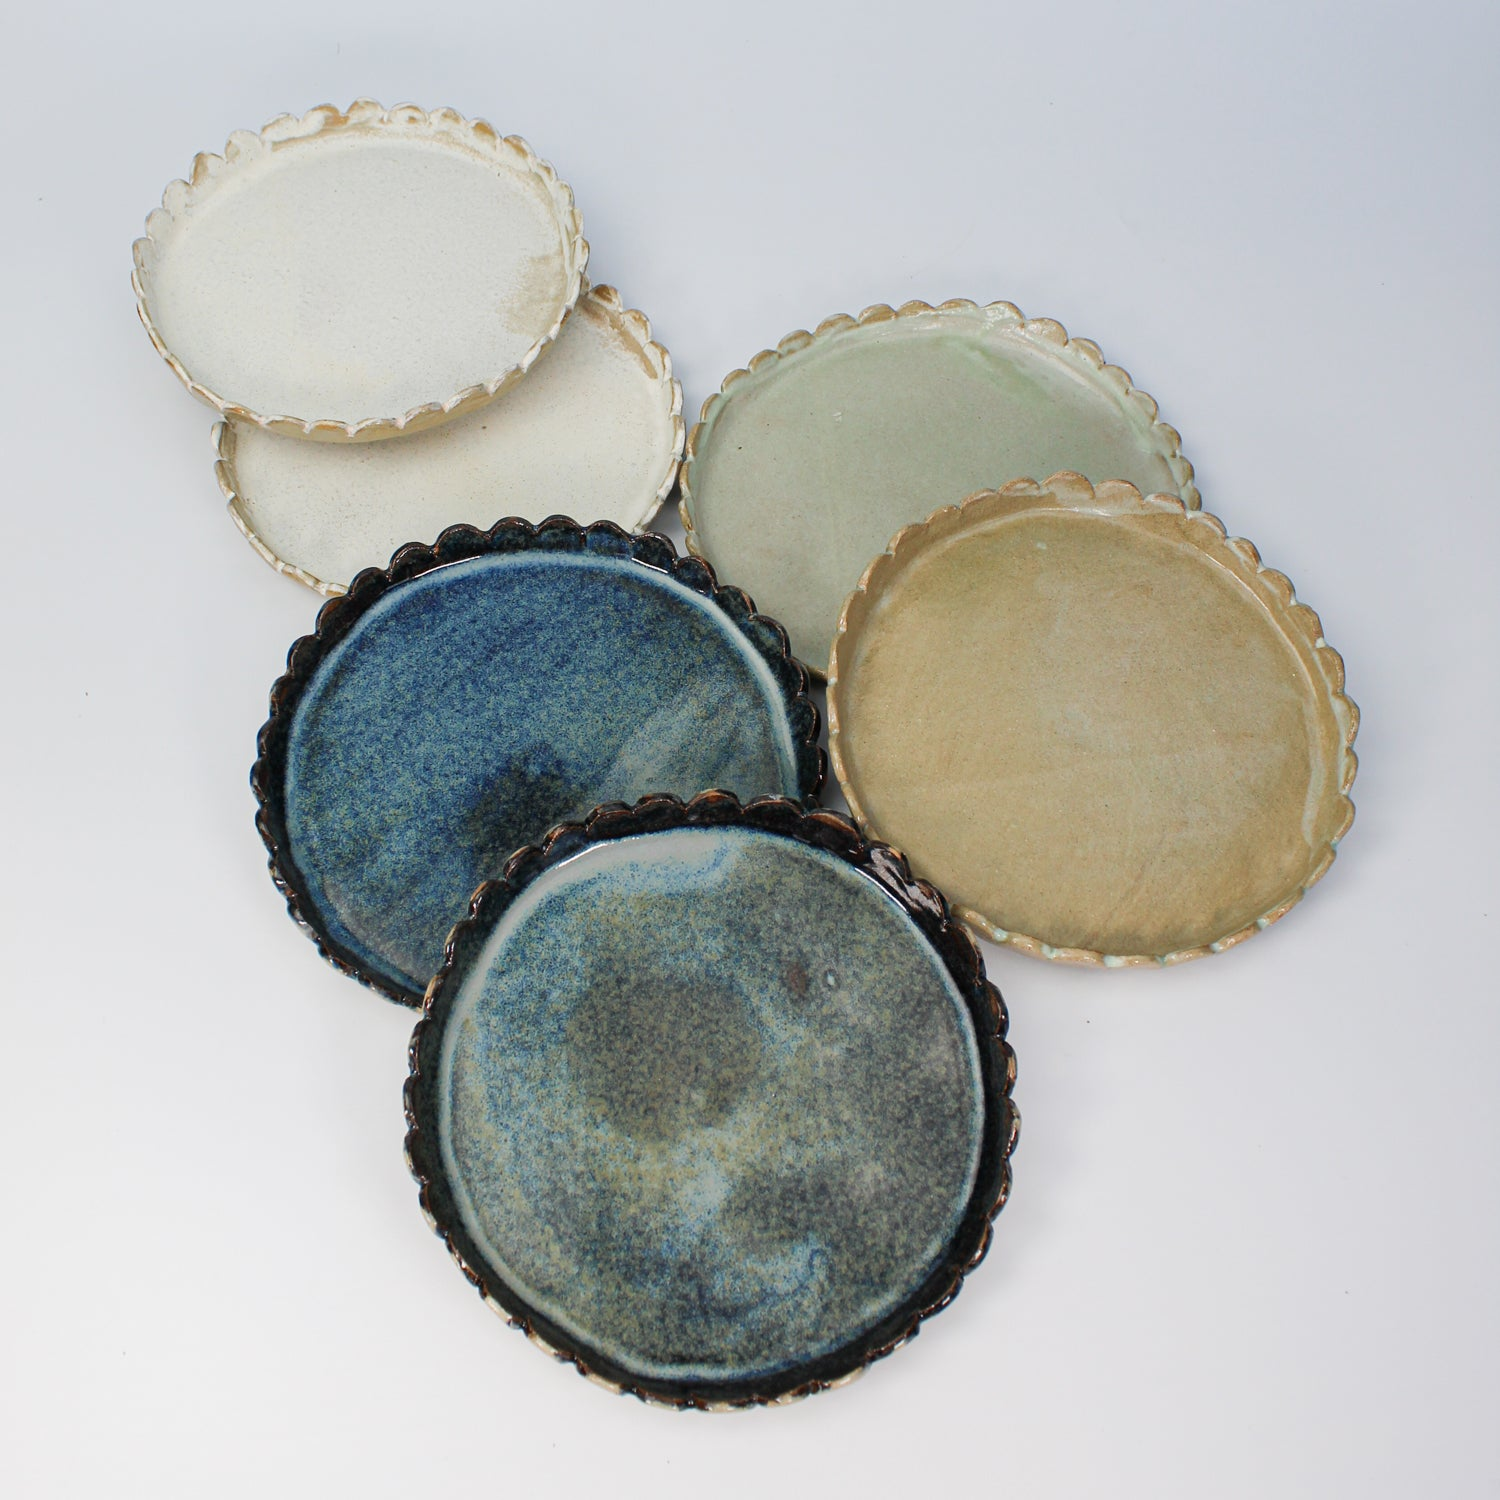 Six ceramic side plates with scalloped edges in blue, white and sage green.